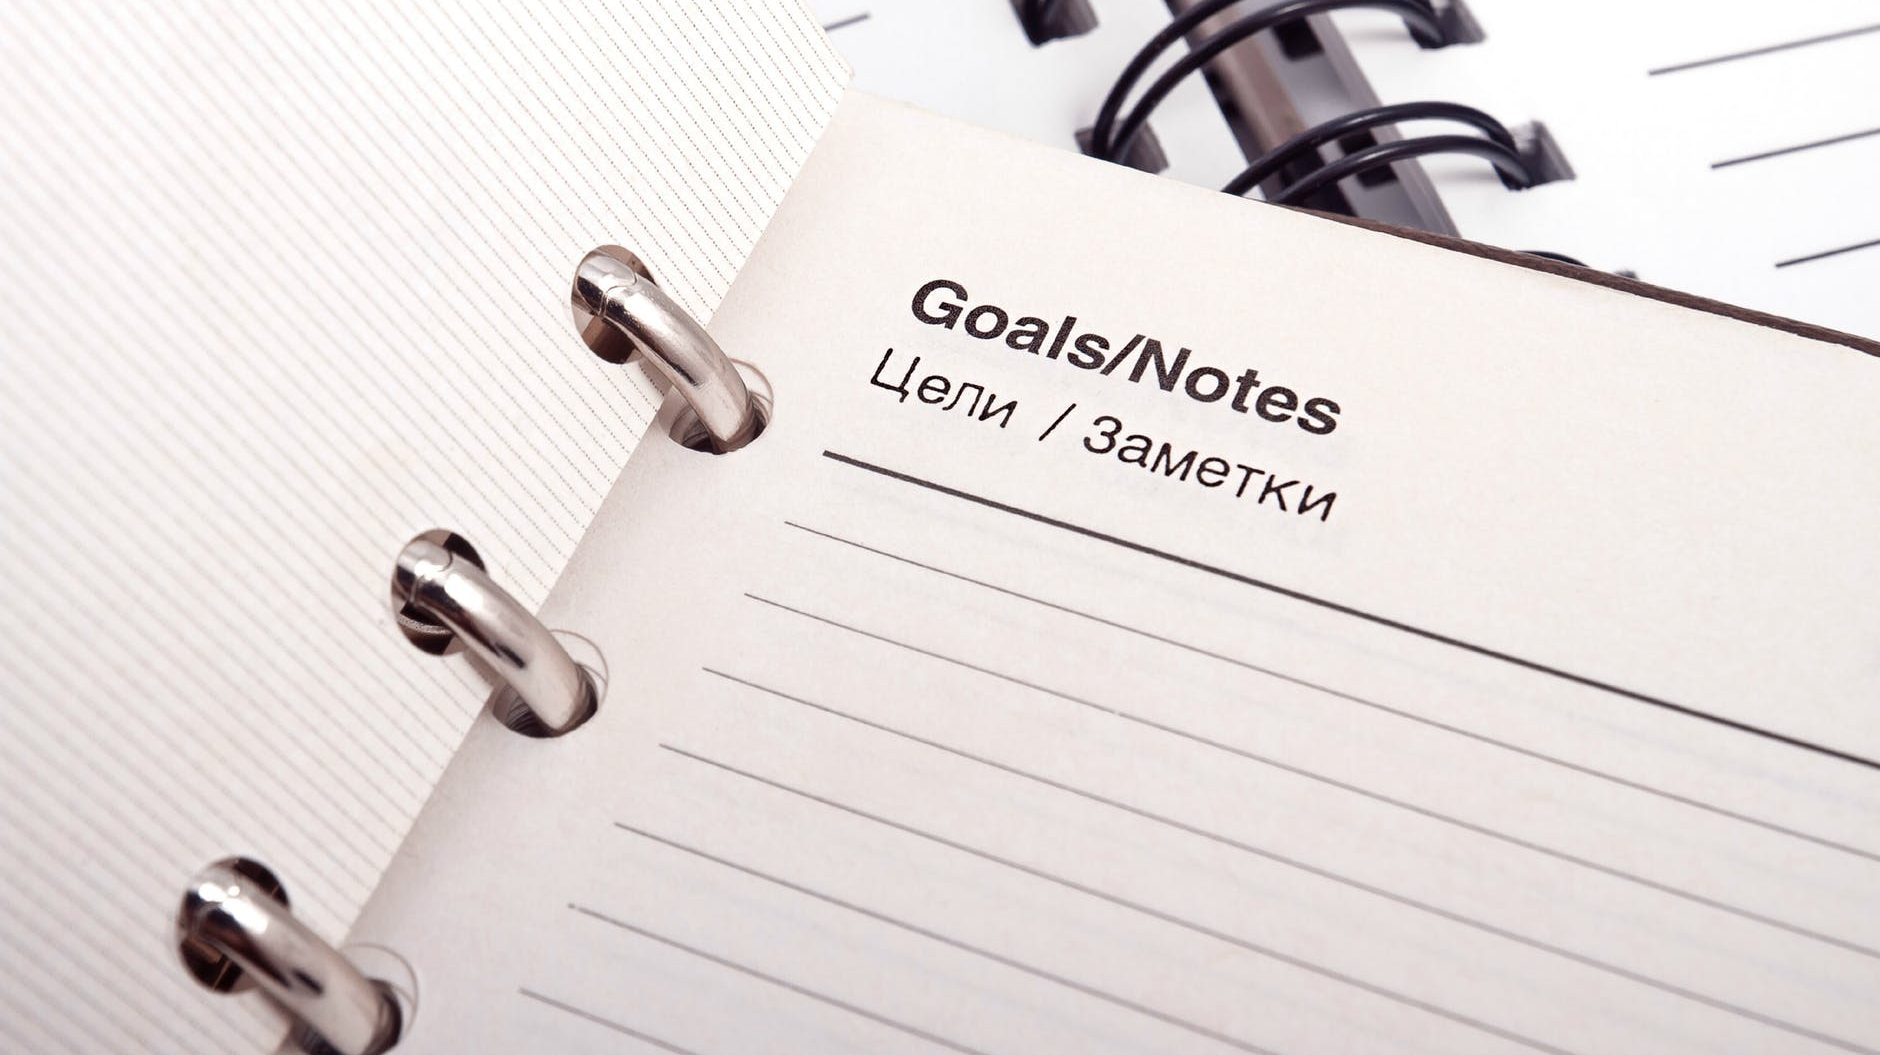 15 Best Business Goals Examples in 2020